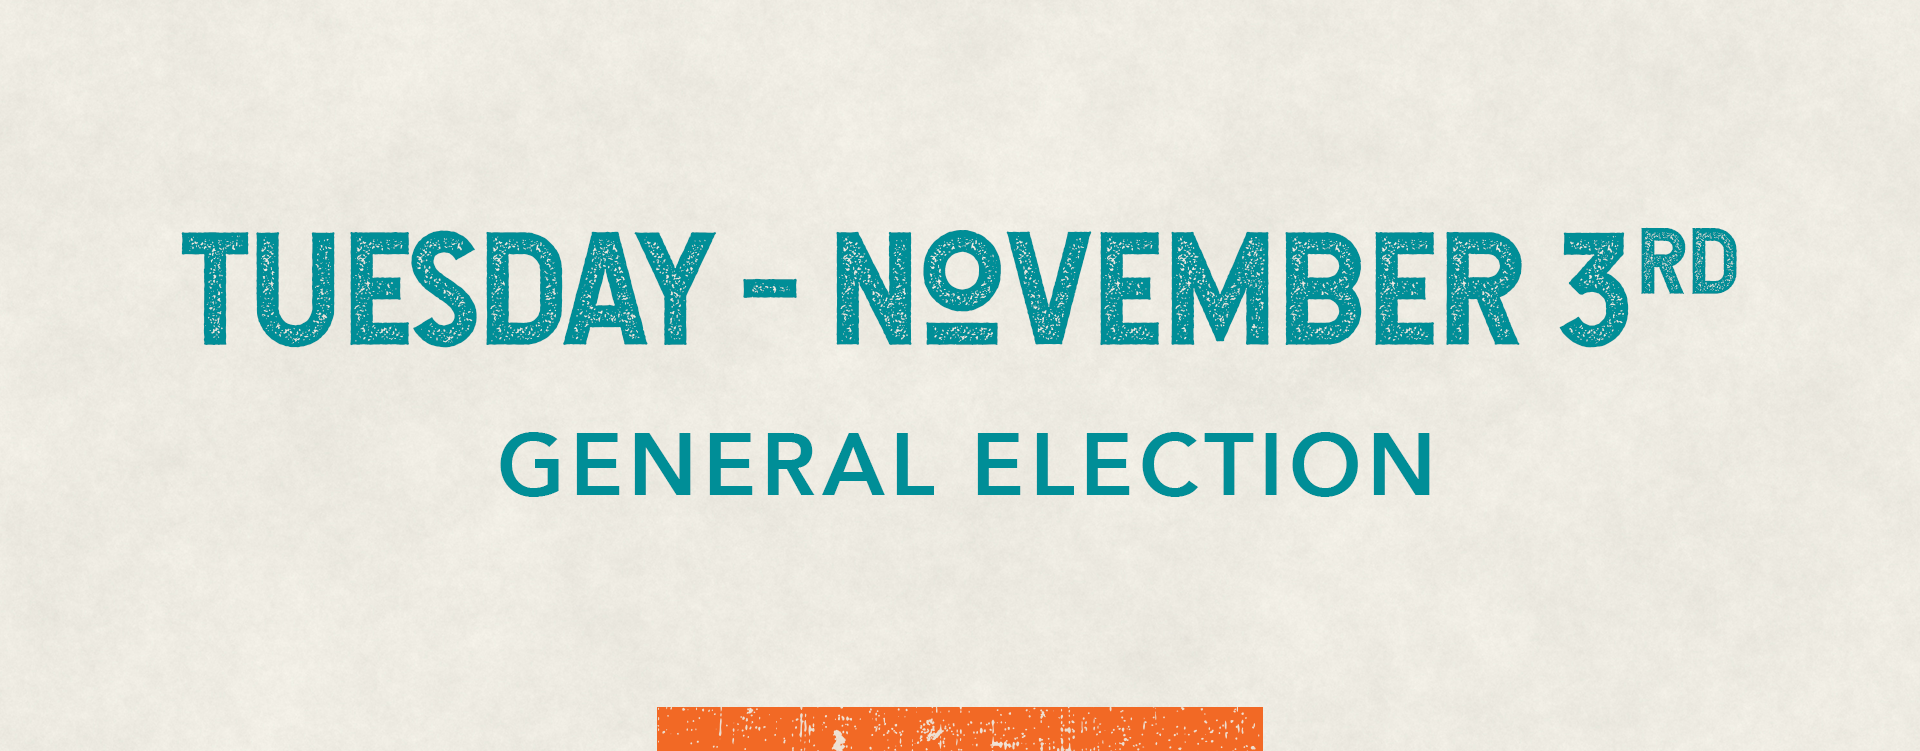 Graphic: Tuesday November 3rd - General Election